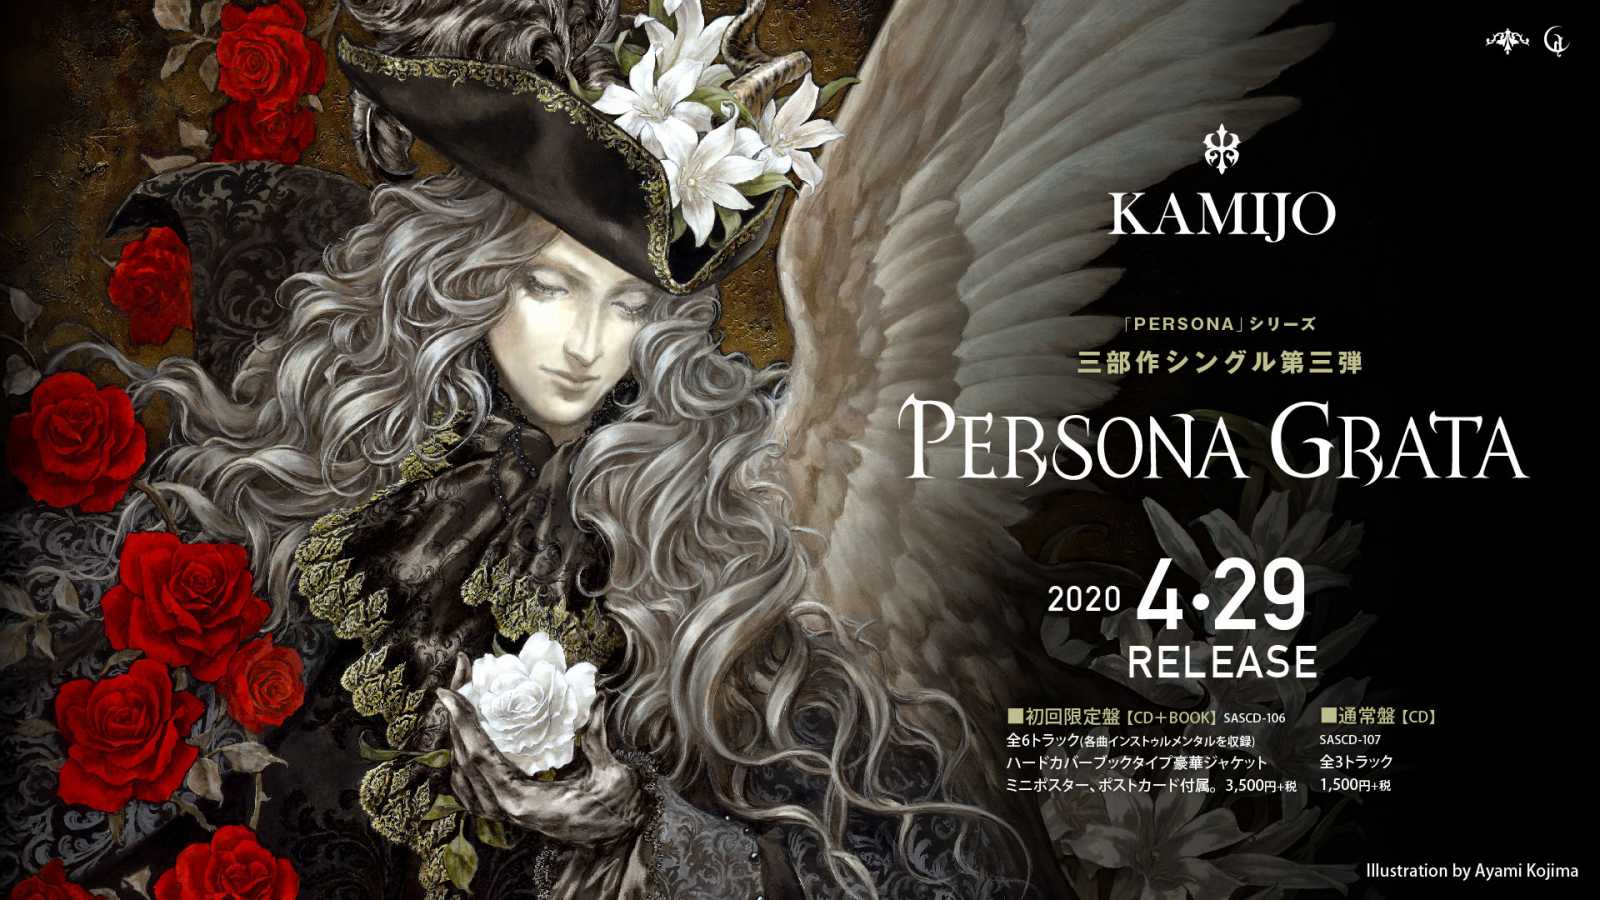 Novo single de KAMIJO © CHATEAU AGENCY CO., Ltd. All rights reserved.